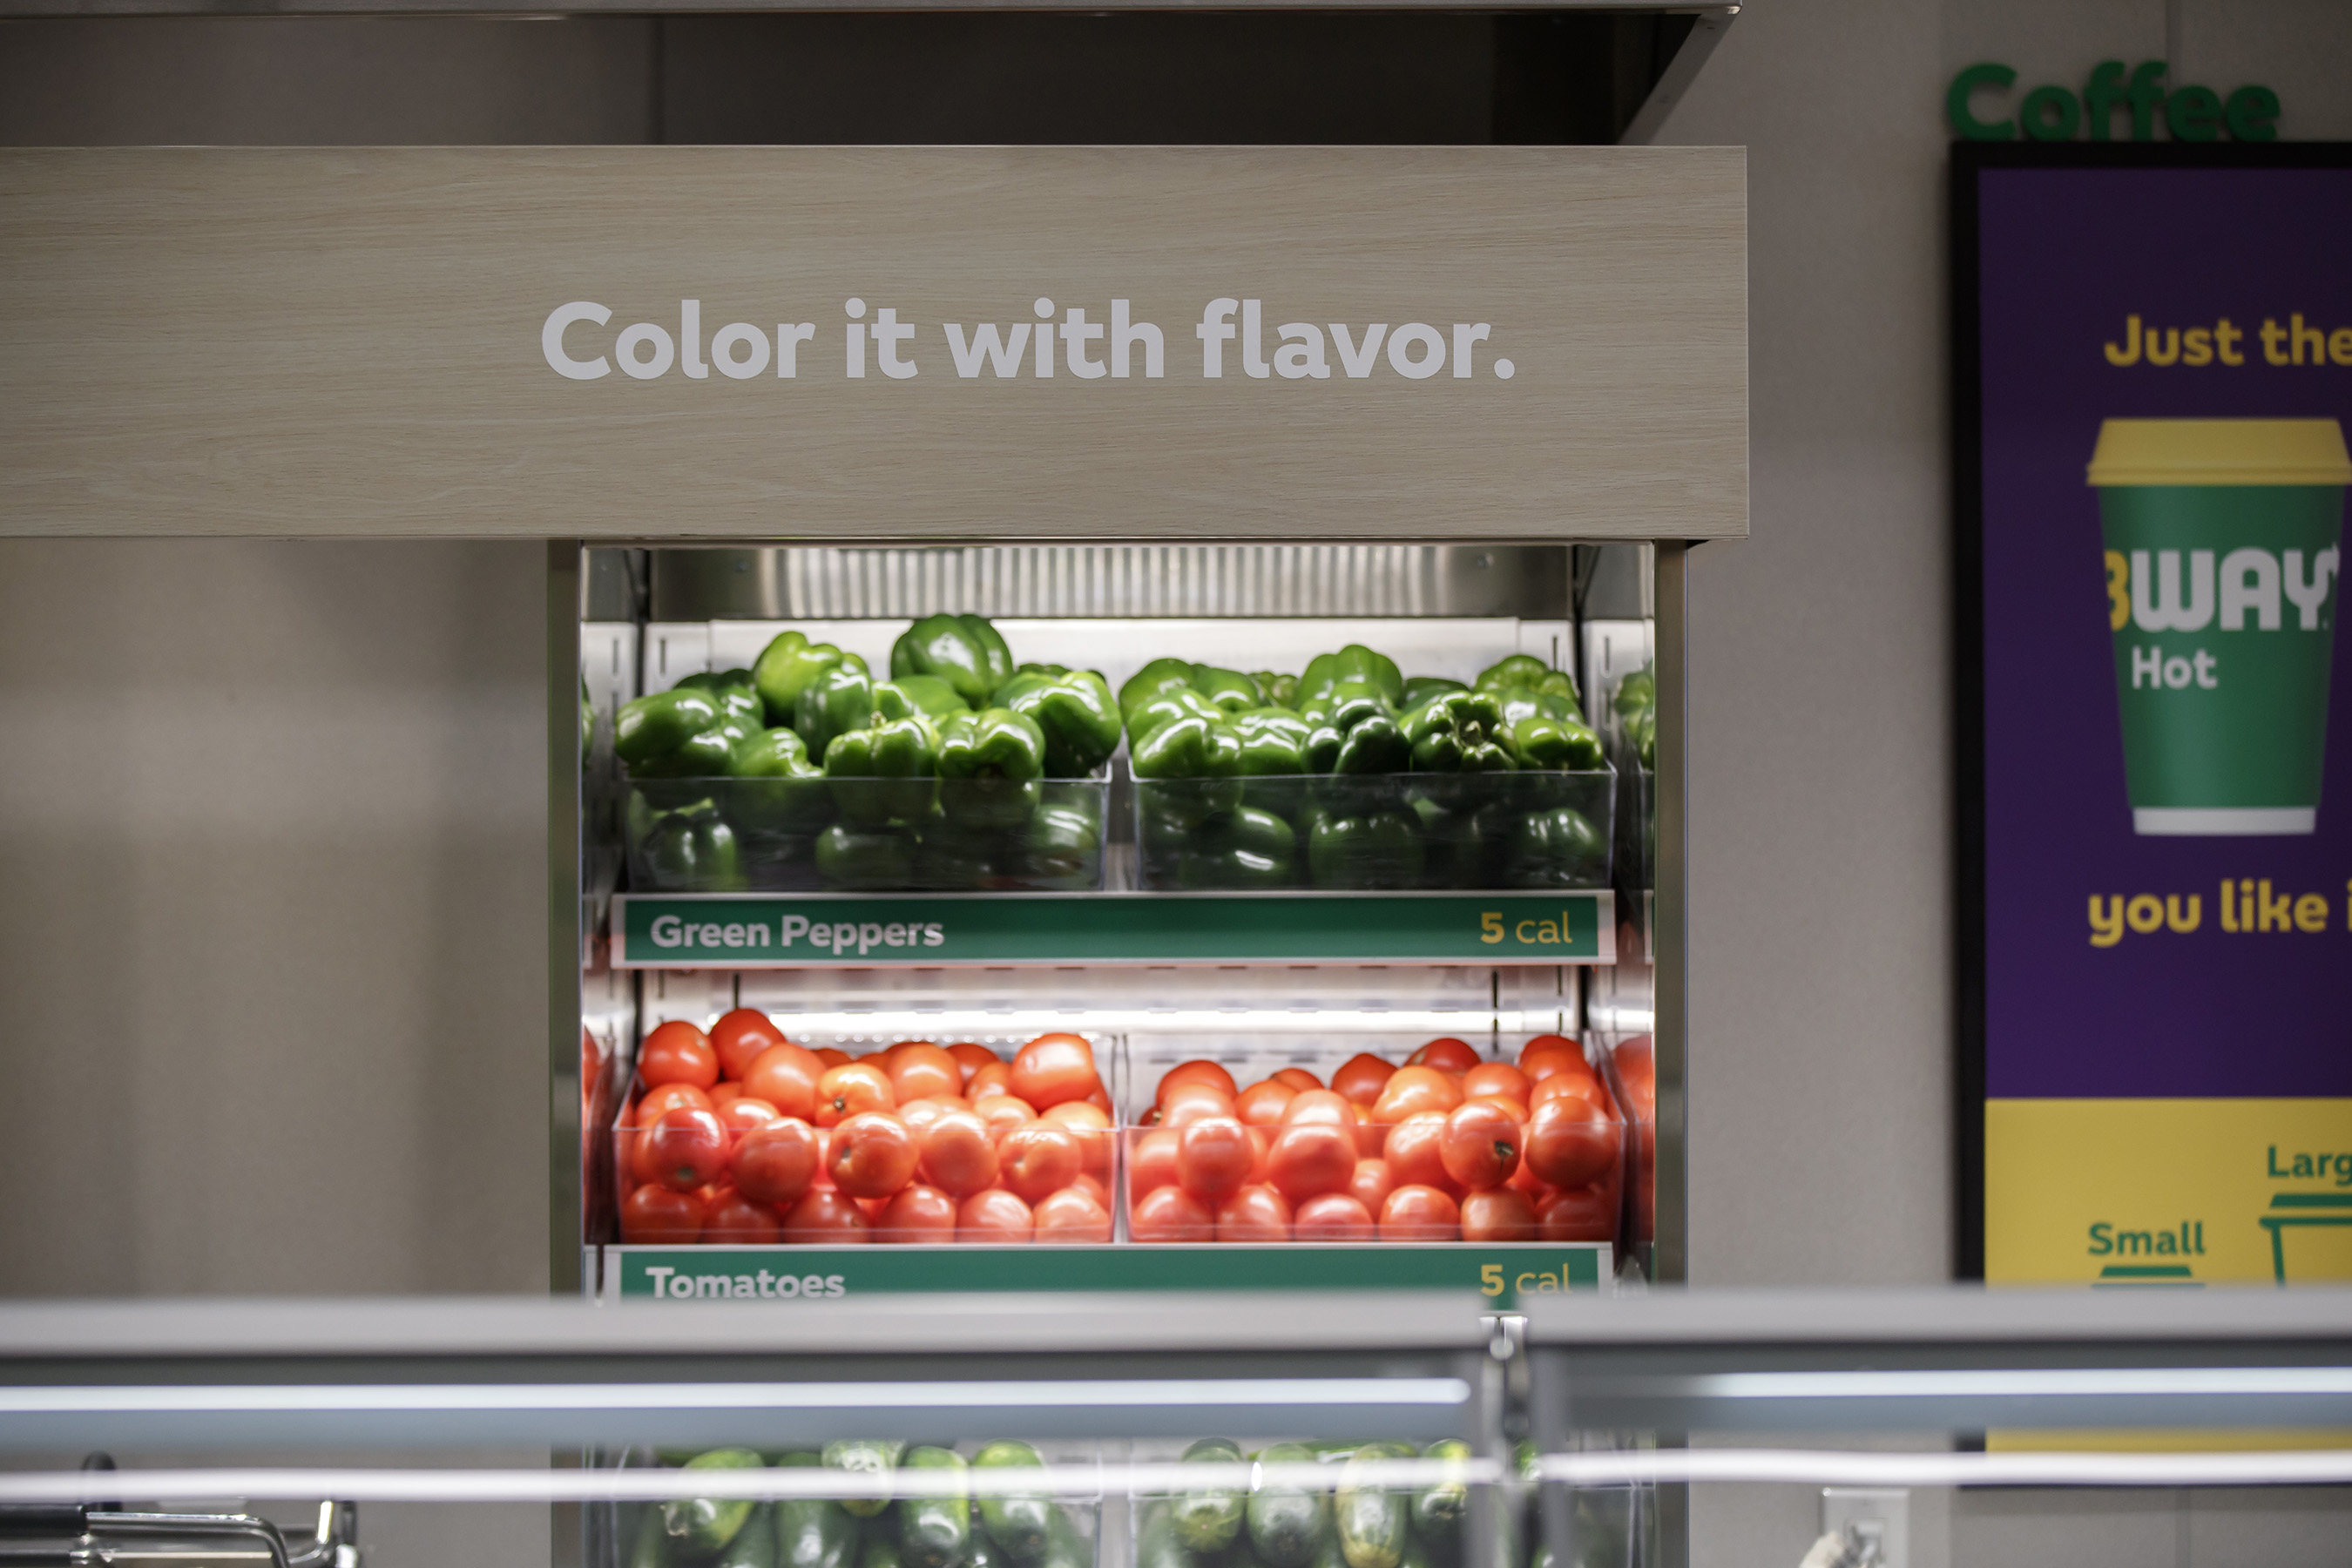 Fresh veggies - whole tomatoes, green peppers, onions and cucumbers - that are sliced daily are highlighted in modern food displays.